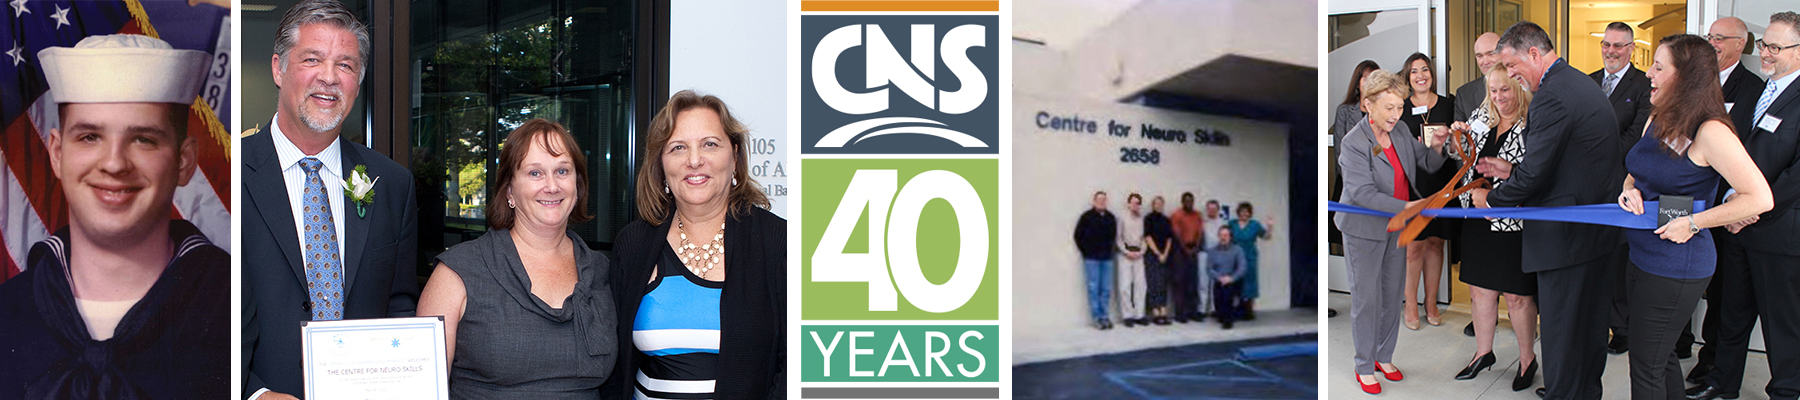 Event: CNS 40th Anniversary